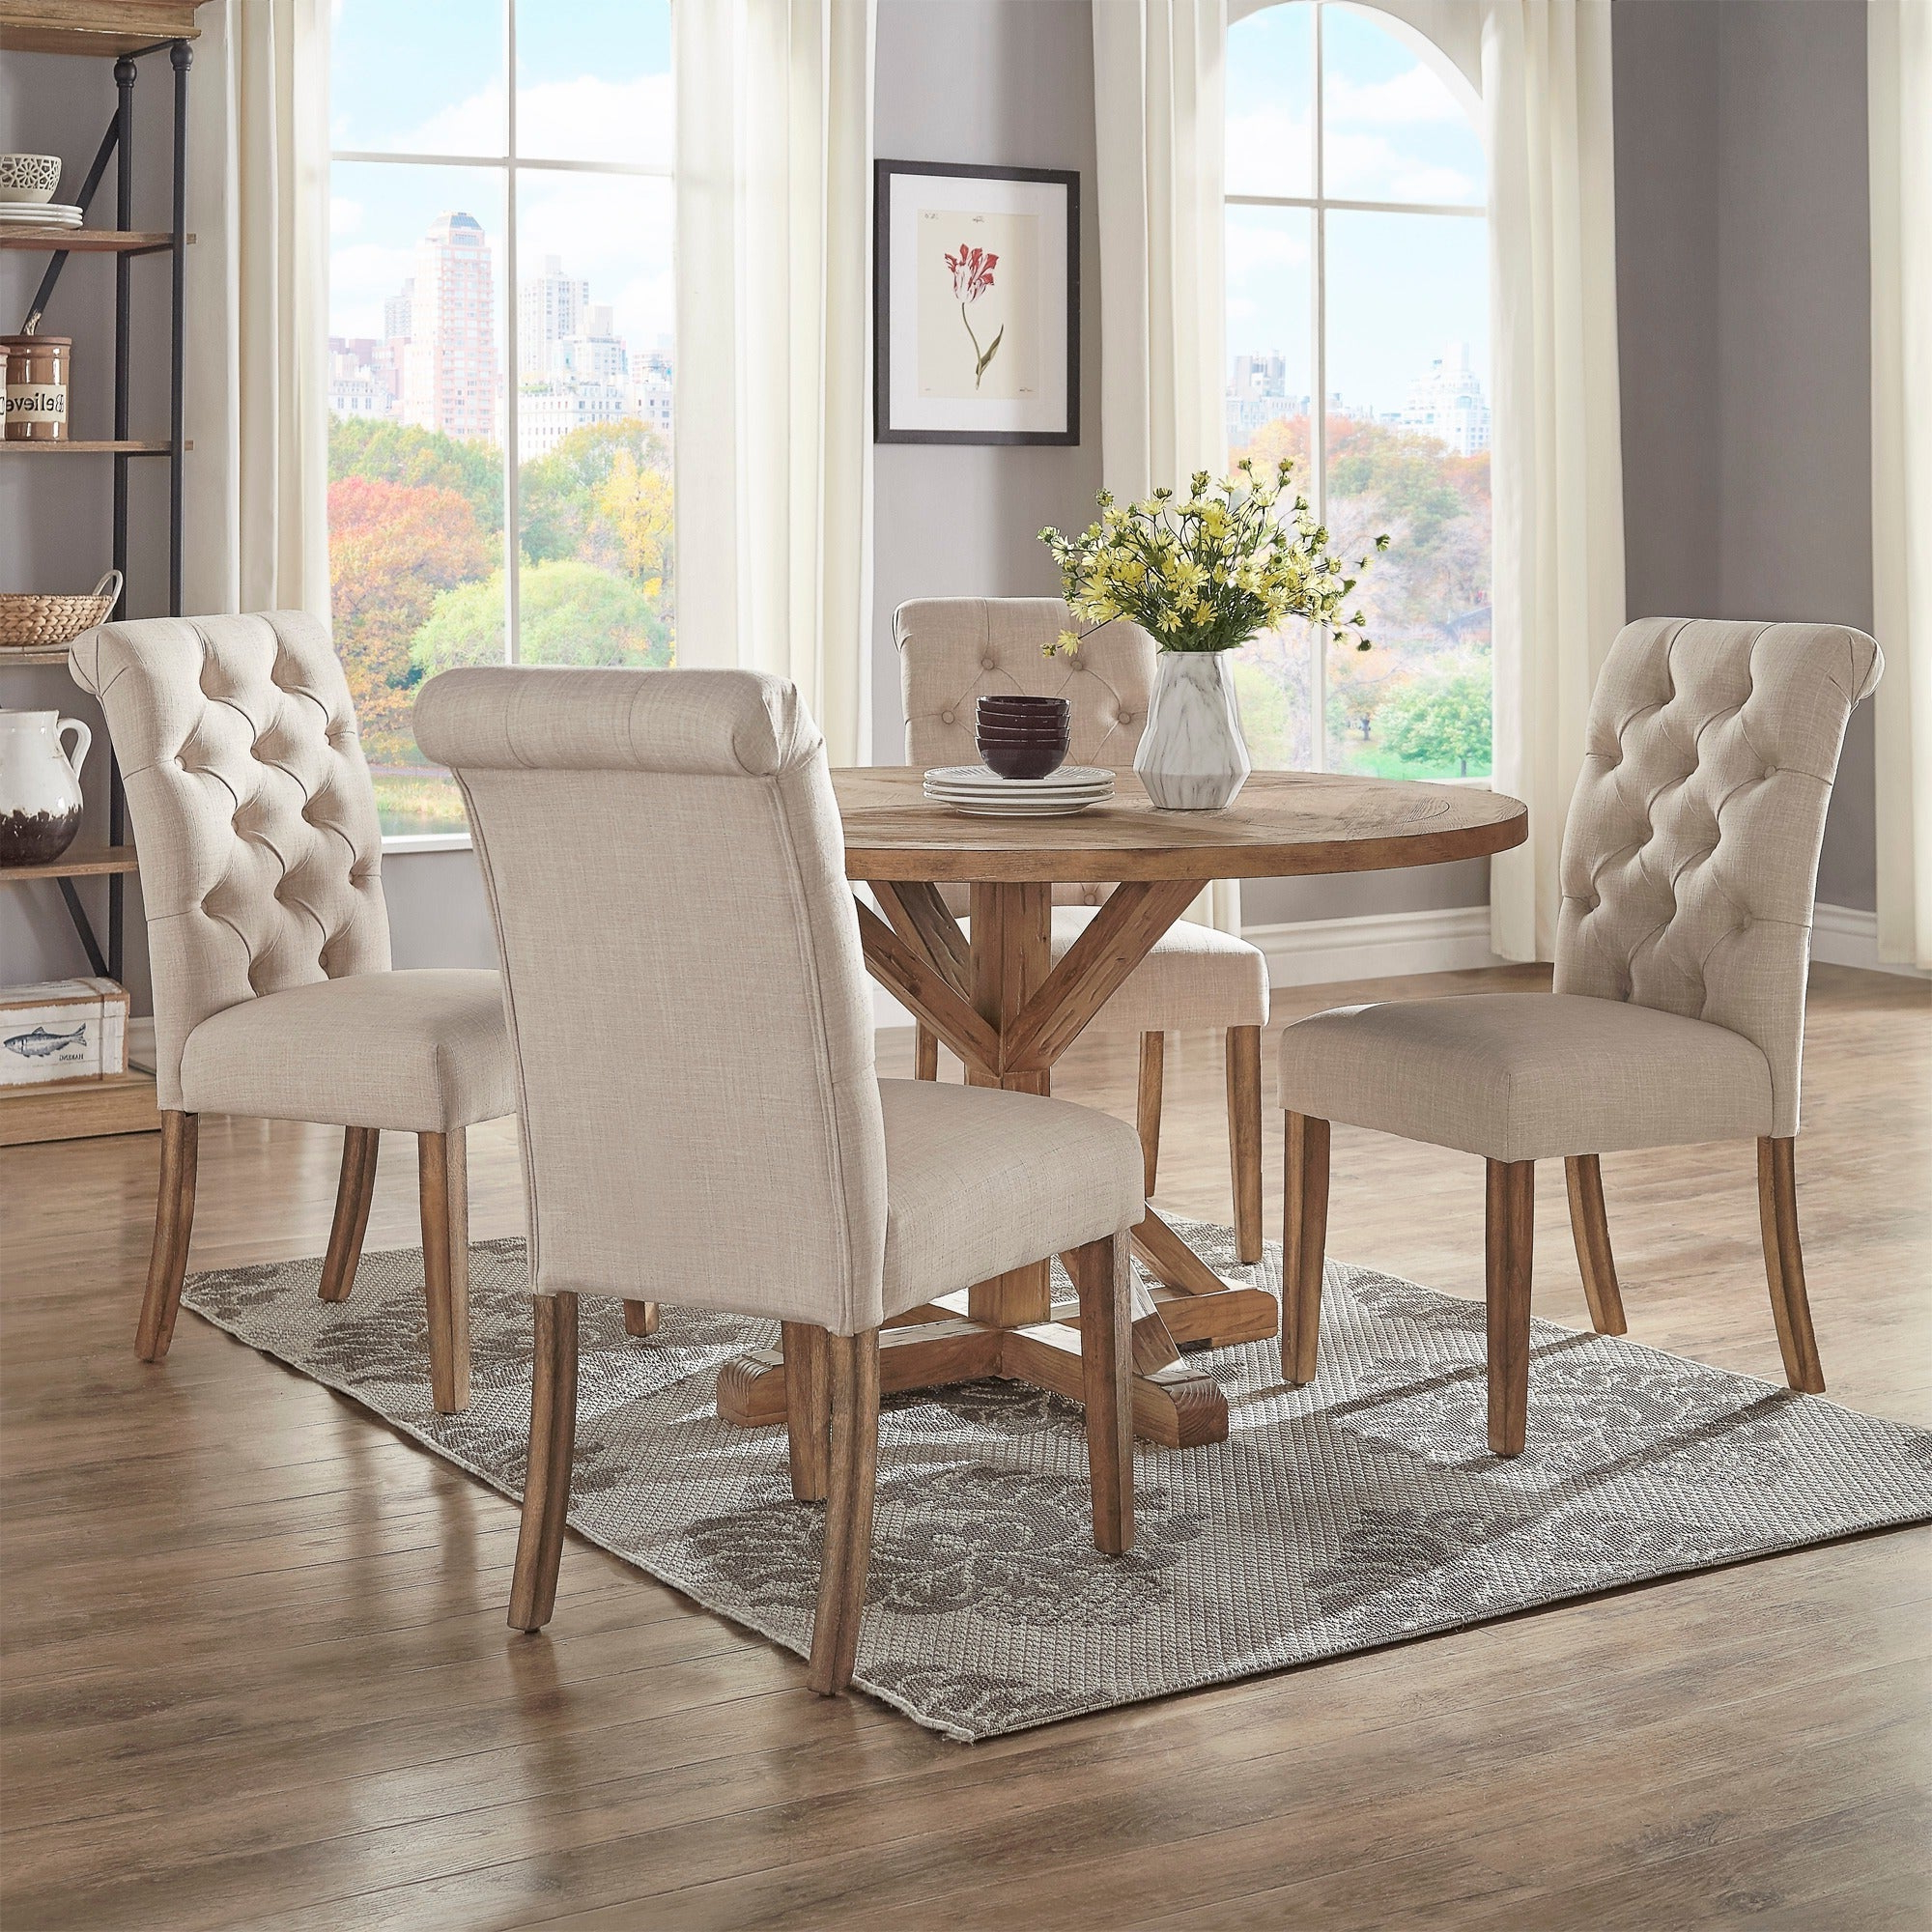 Best And Newest North Reading 5 Piece Dining Table Sets With Buy Kitchen & Dining Room Tables Online At Overstock (View 4 of 25)